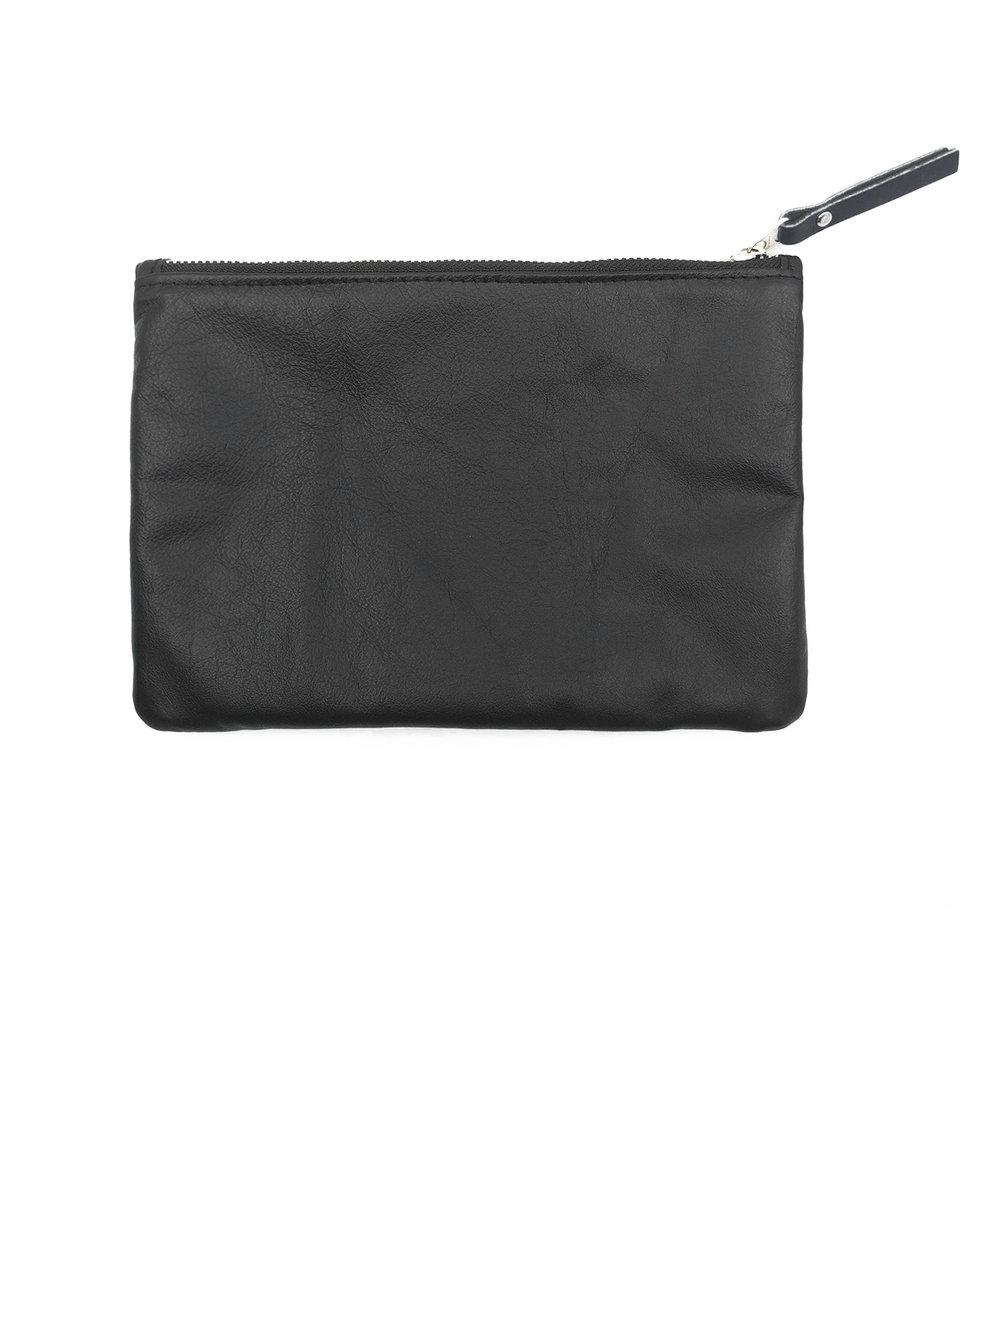 Clutch - more colors available32.00$